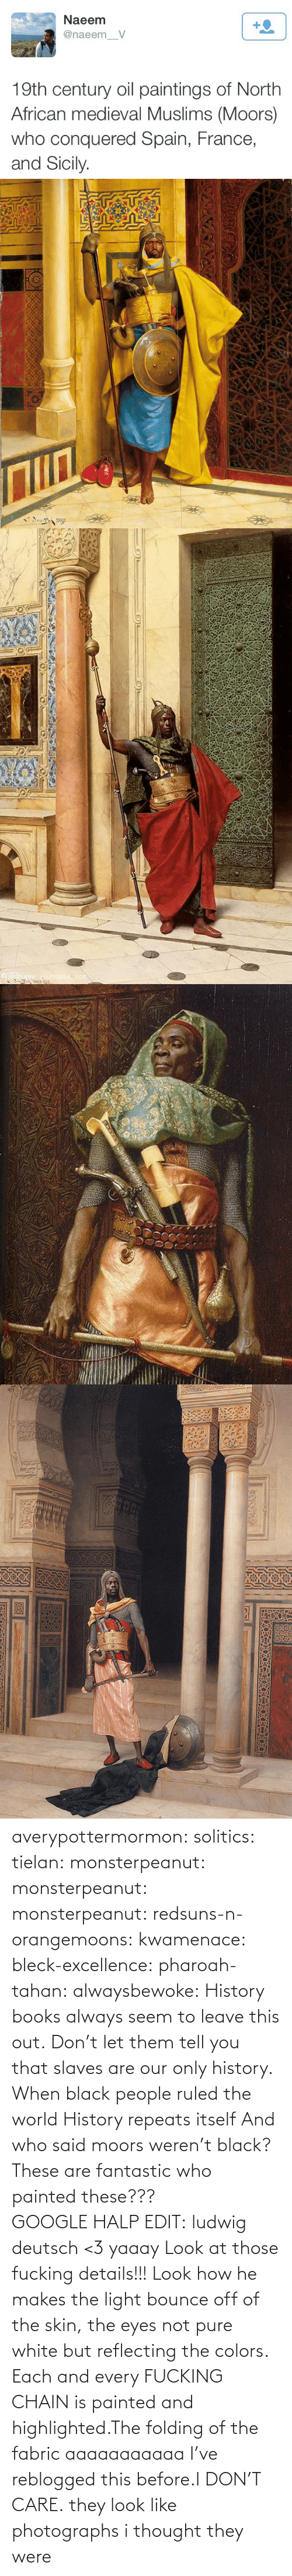 Books, Google, and Paintings: Naeem  +2  @naeem_V  19th century oil paintings of North  African medieval Muslims (Moors)  who conquered Spain, France,  and Sicily.   Nww.youhuaua com averypottermormon: solitics:  tielan:  monsterpeanut:  monsterpeanut:  monsterpeanut:  redsuns-n-orangemoons:  kwamenace:  bleck-excellence:  pharoah-tahan:  alwaysbewoke:  History books always seem to leave this out.  Don't let them tell you that slaves are our only history.  When black people ruled the world  History repeats itself  And who said moors weren't black?  These are fantastic who painted these???GOOGLE HALP EDIT: ludwig deutsch <3   yaaay   Look at those fucking details!!! Look how he makes the light bounce off of the skin, the eyes not pure white but reflecting the colors. Each and every FUCKING CHAIN is painted and highlighted.The folding of the fabric aaaaaaaaaaa  I've reblogged this before.I DON'T CARE.  they look like photographs   i thought they were